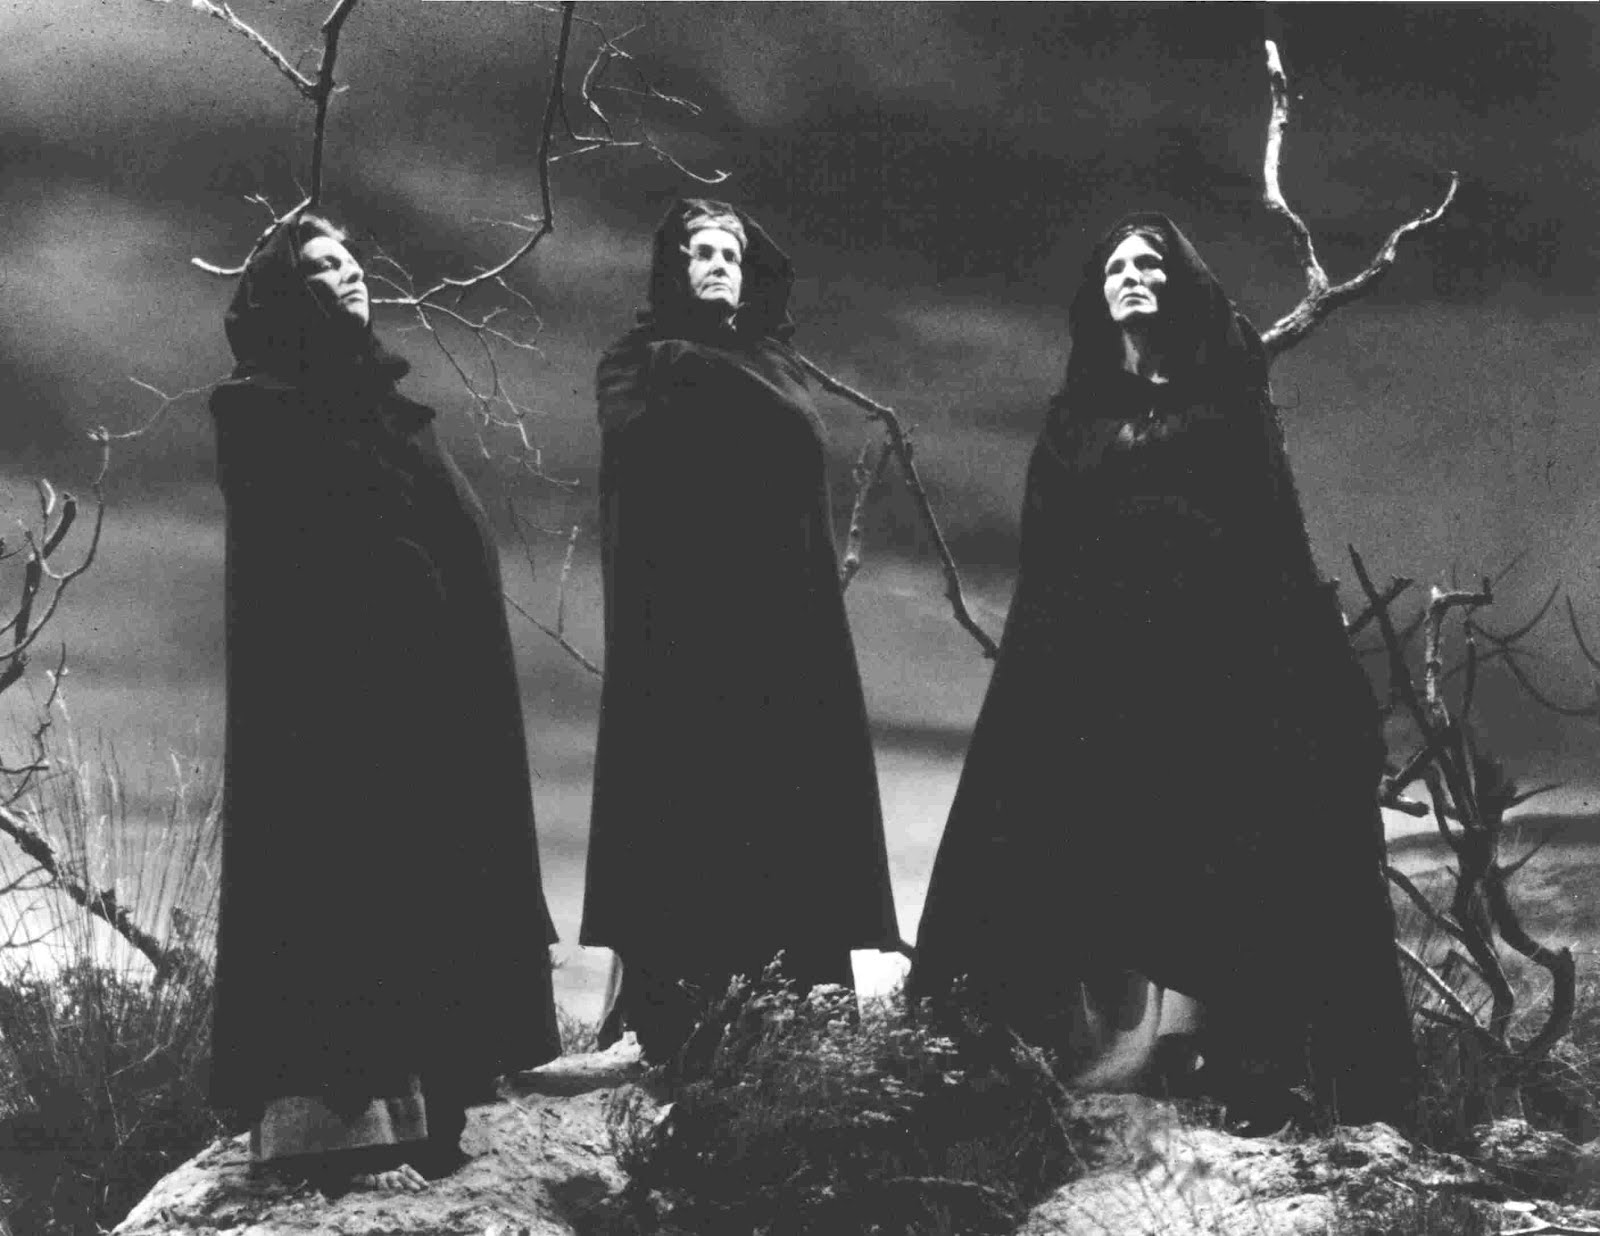 Three witches macbeth opening lines dating 3